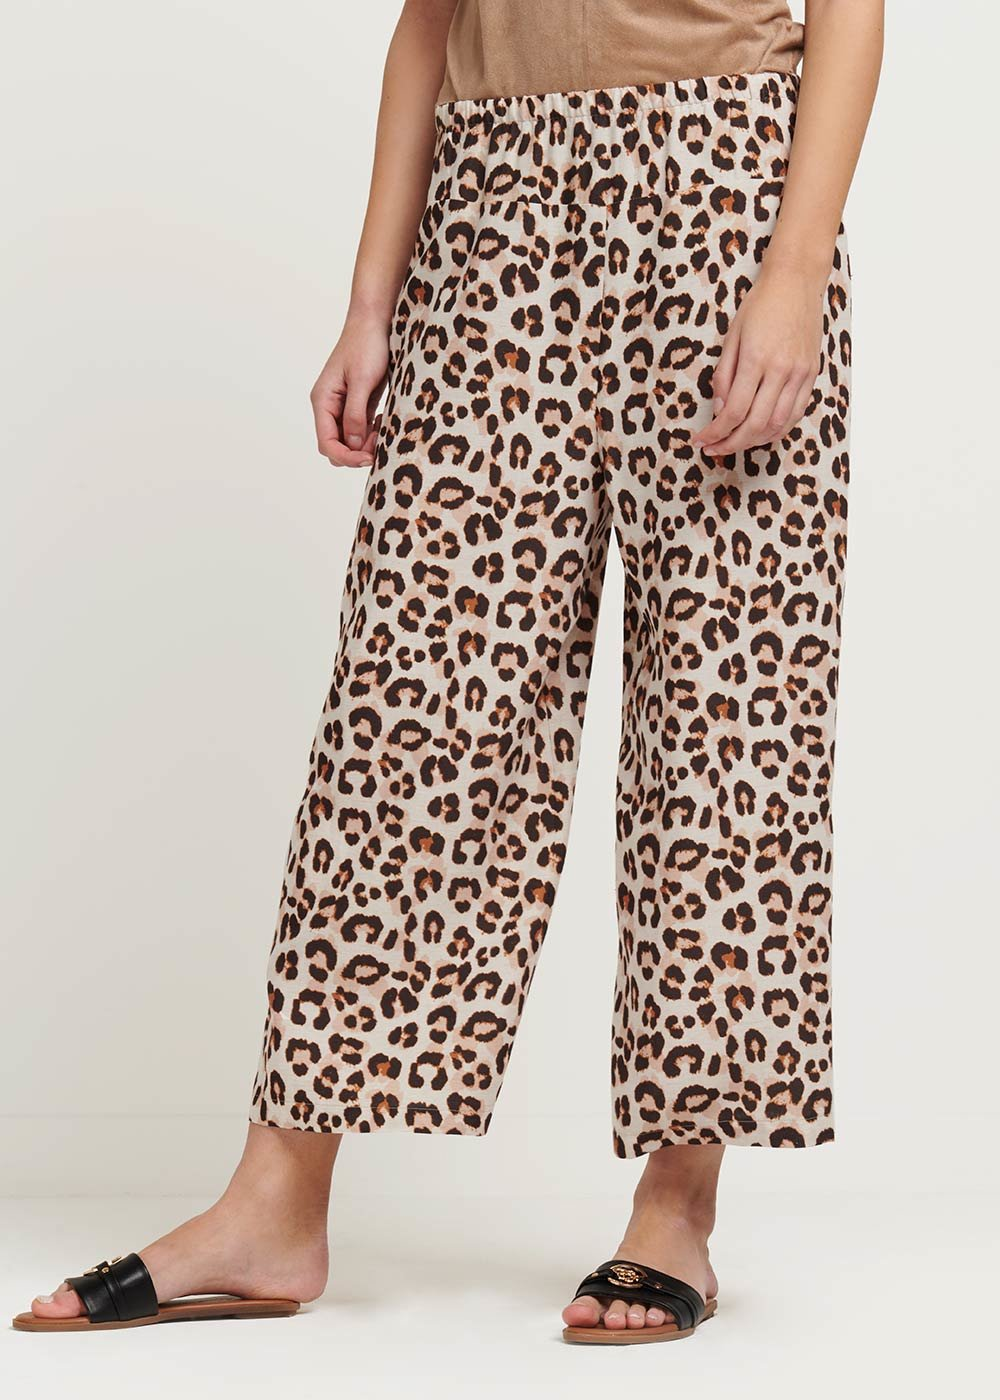 Megan capri pants with spotted print - L.beige\ Coccio Fantasia - Woman